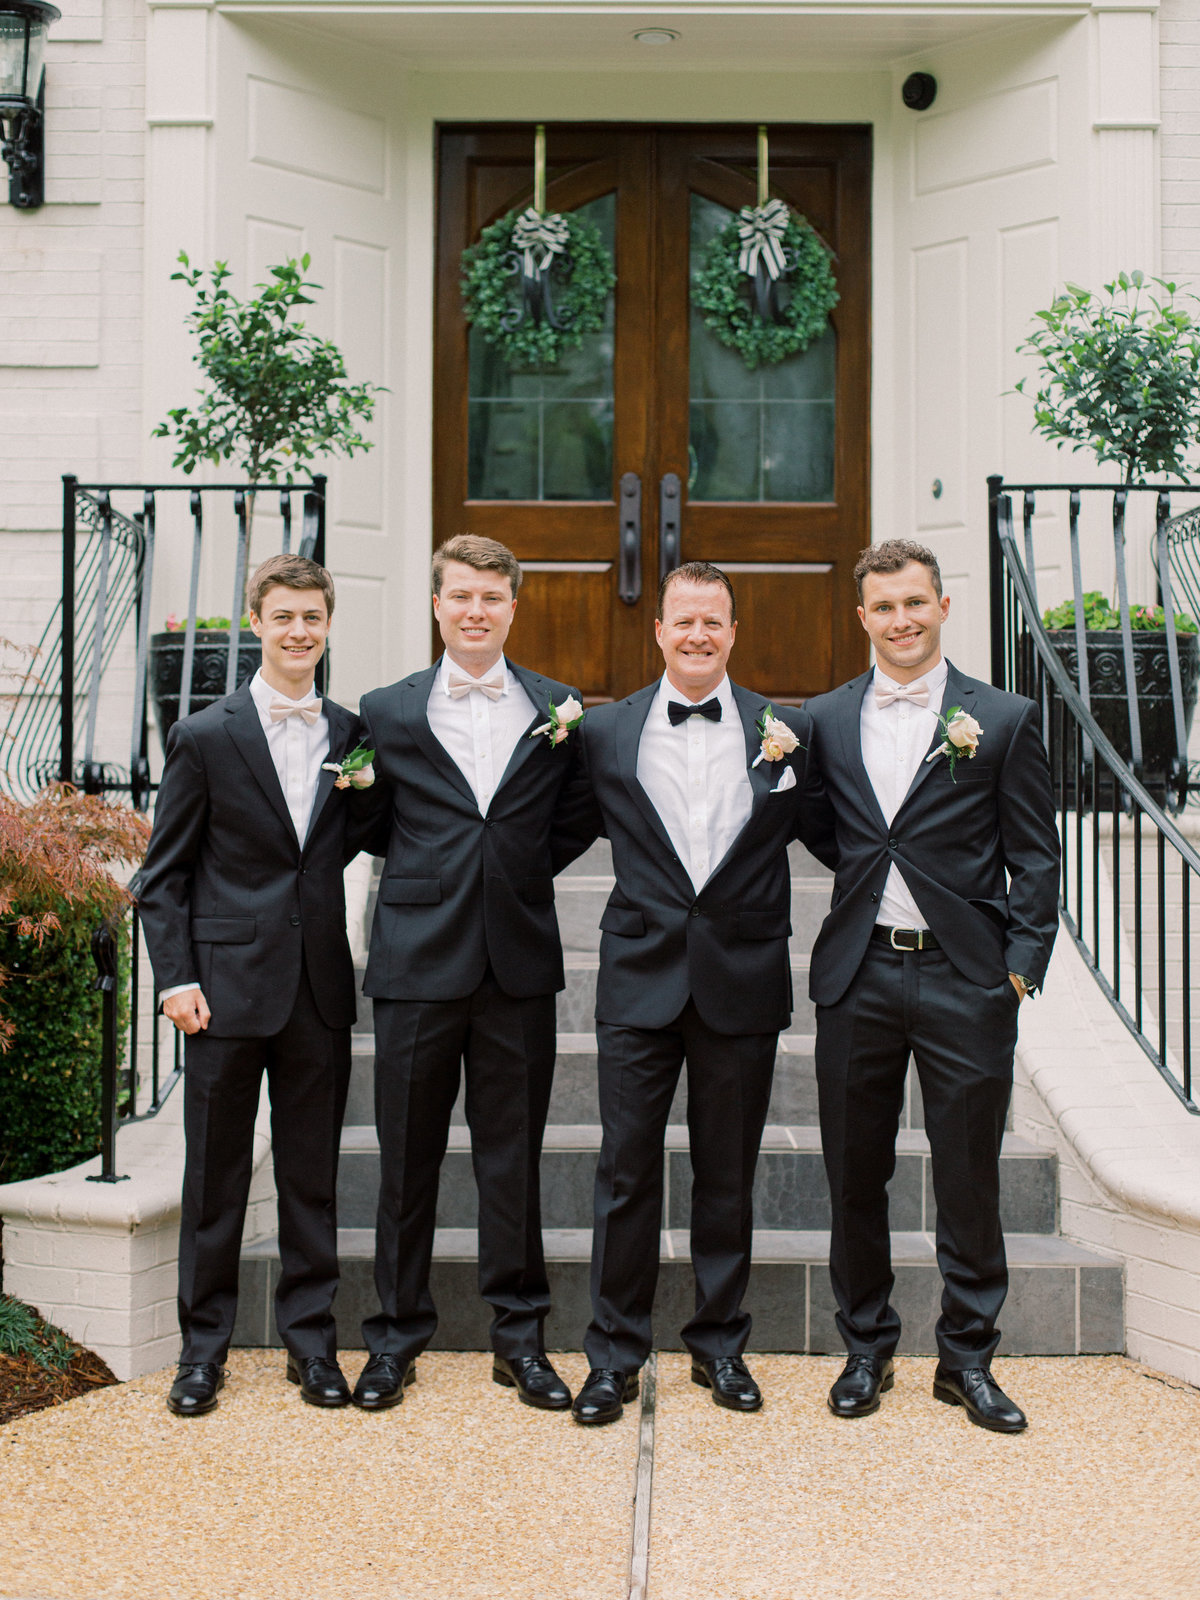 2019-06-08Carrie&MikeWedding-128